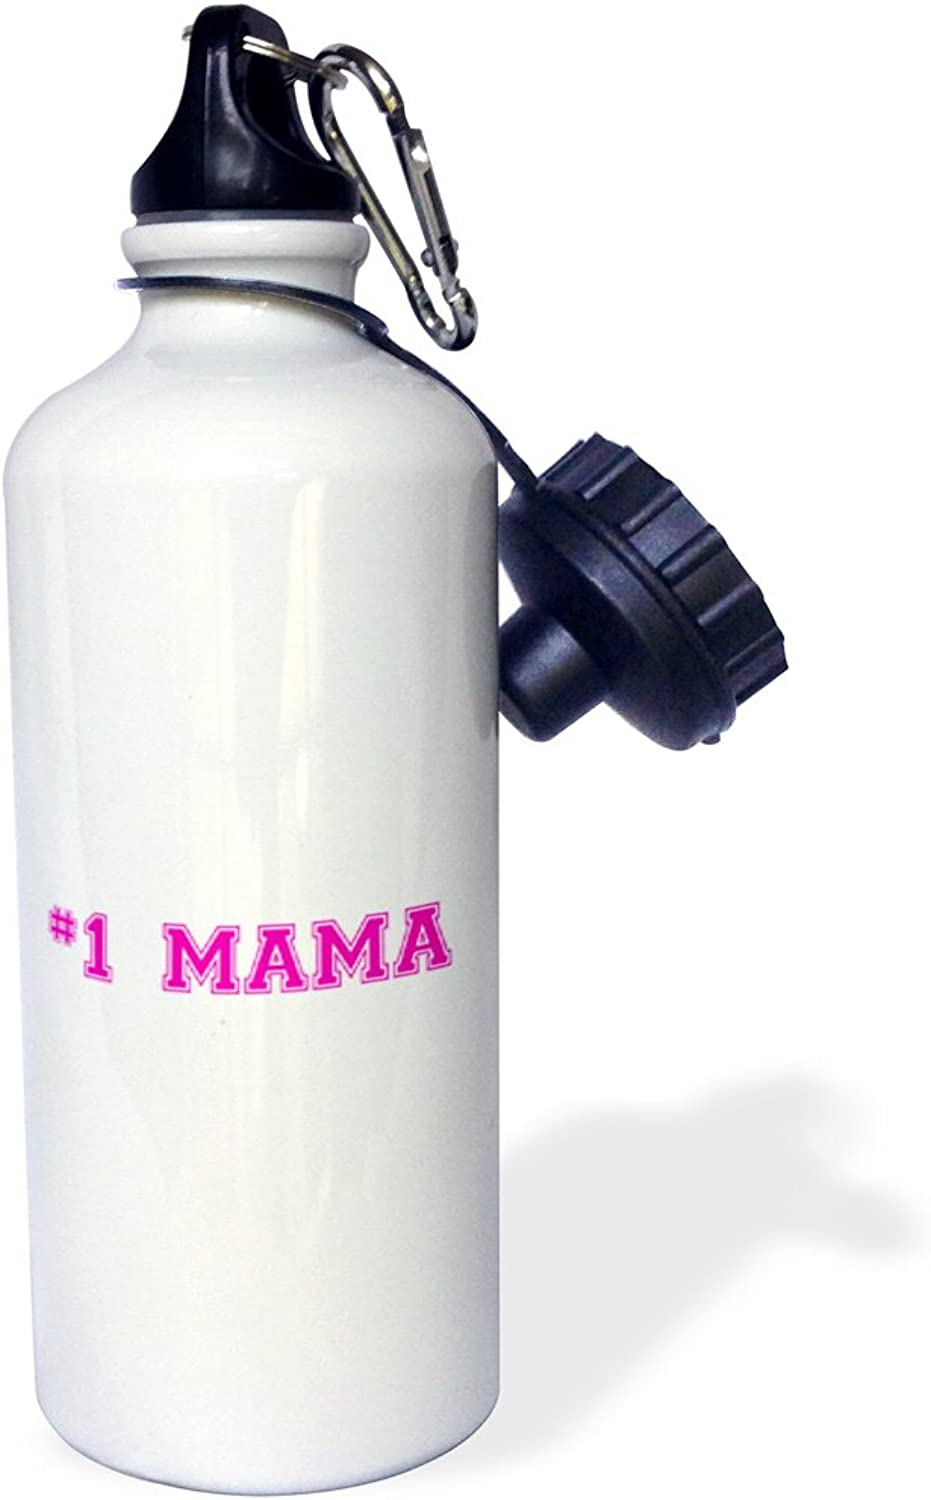 3dpink wb_151626_1  1 NeighborNumber One NeighborGifts for worlds Beste and greatest neighbors in the neighborhood  Sports Water Bottle, 21 oz, White